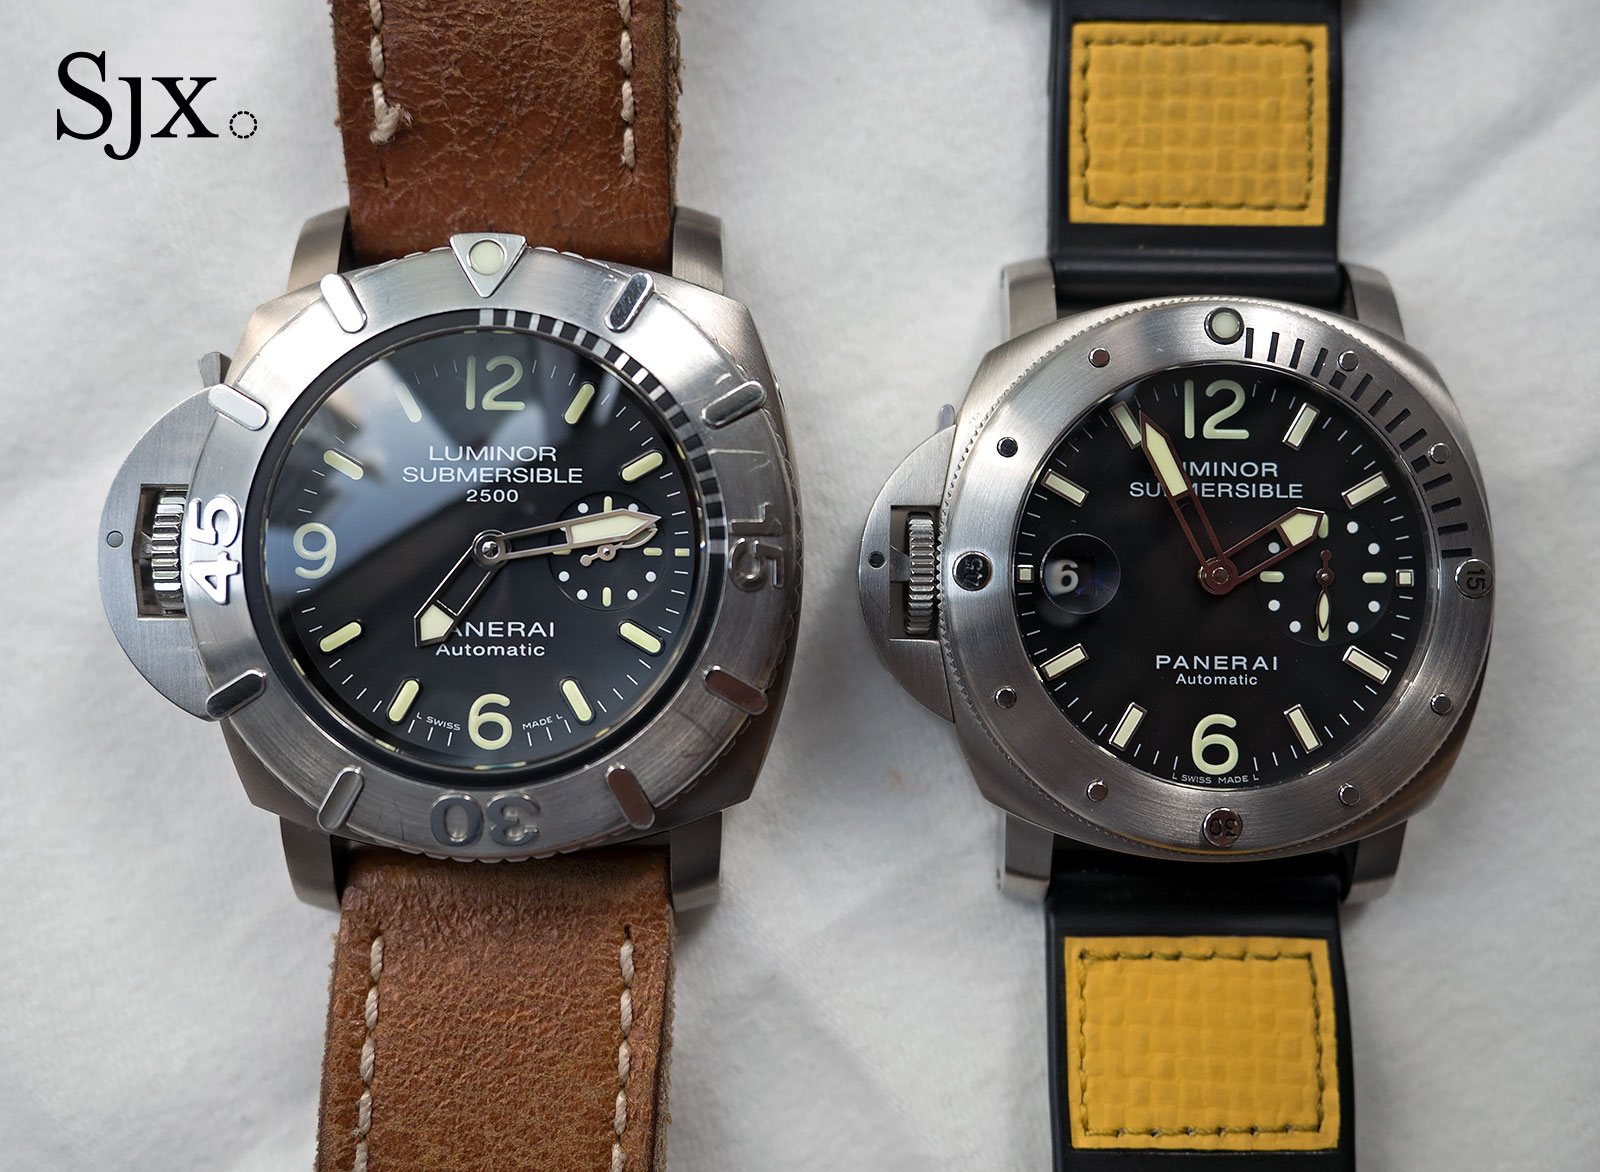 Panerai Submersible 2500 Destro Chronopassion PAM358-7